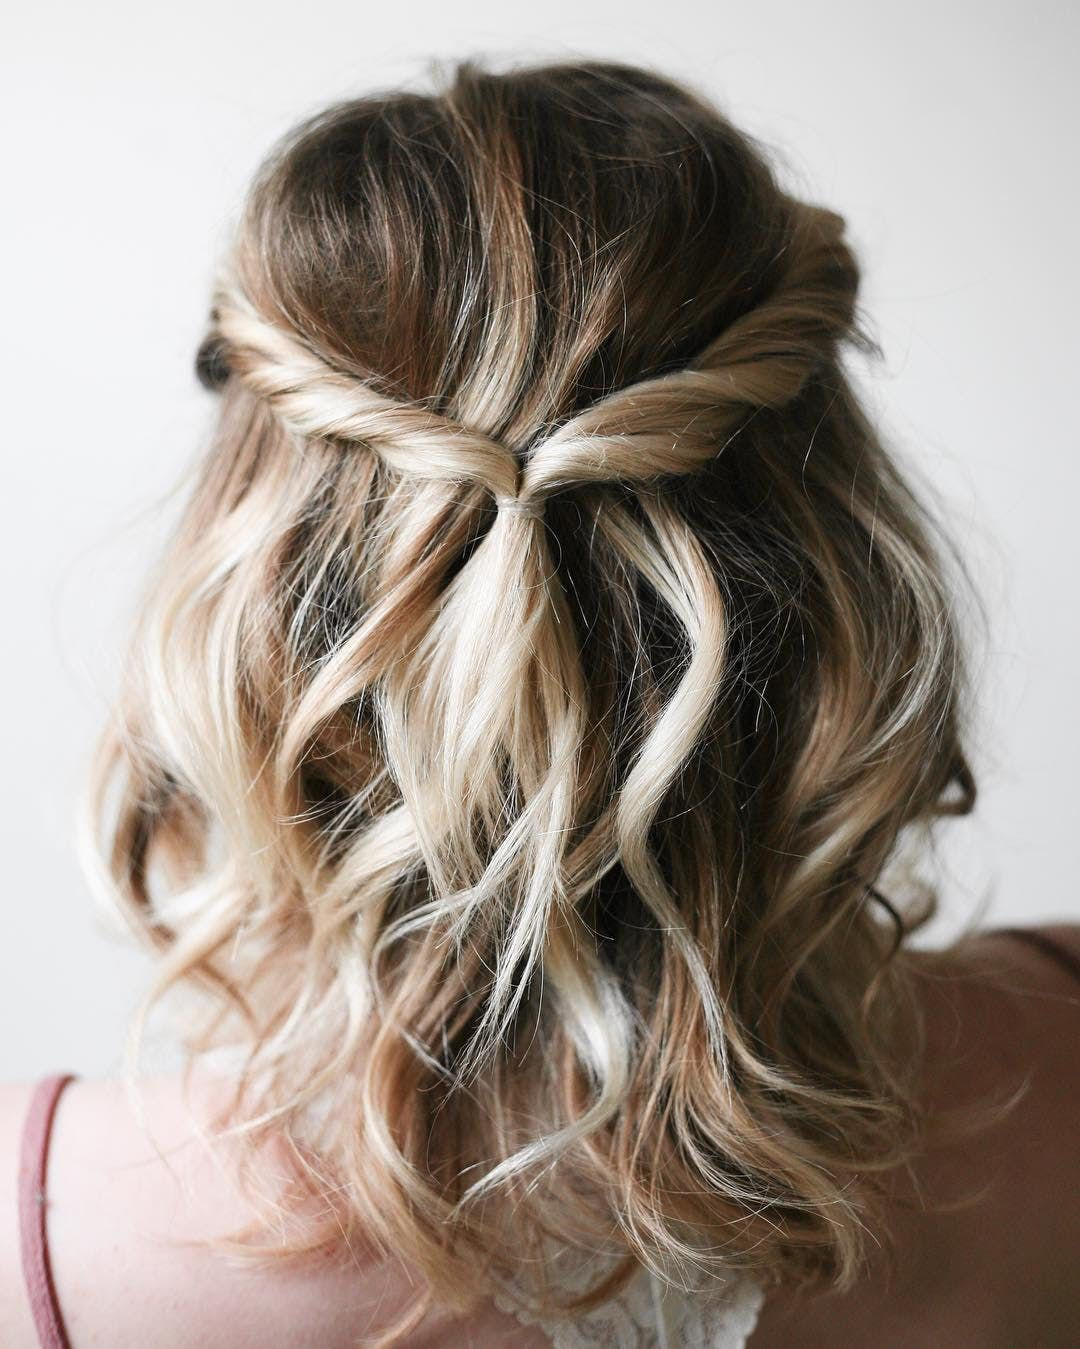 hairstyles that require zero curling iron skills hair style